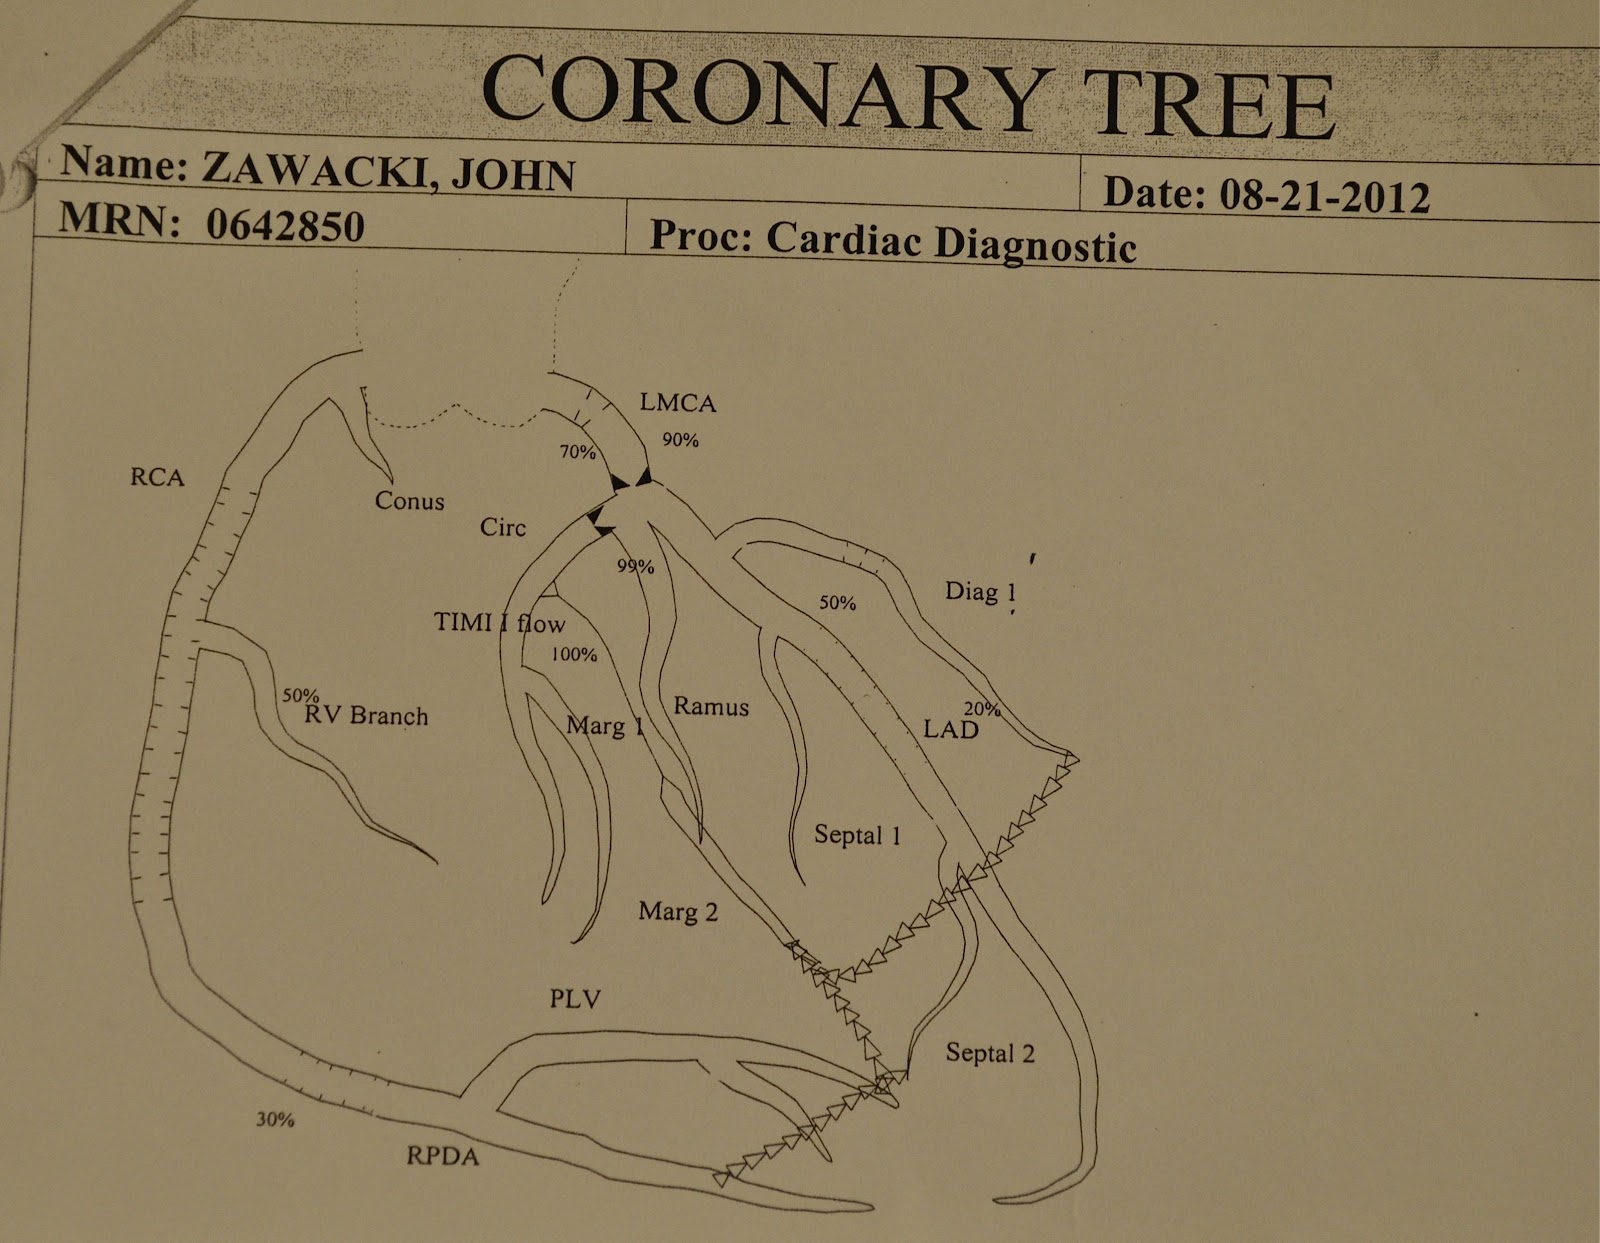 coronary anatomy diagram how to read automotive wiring diagrams wit 39s end tree